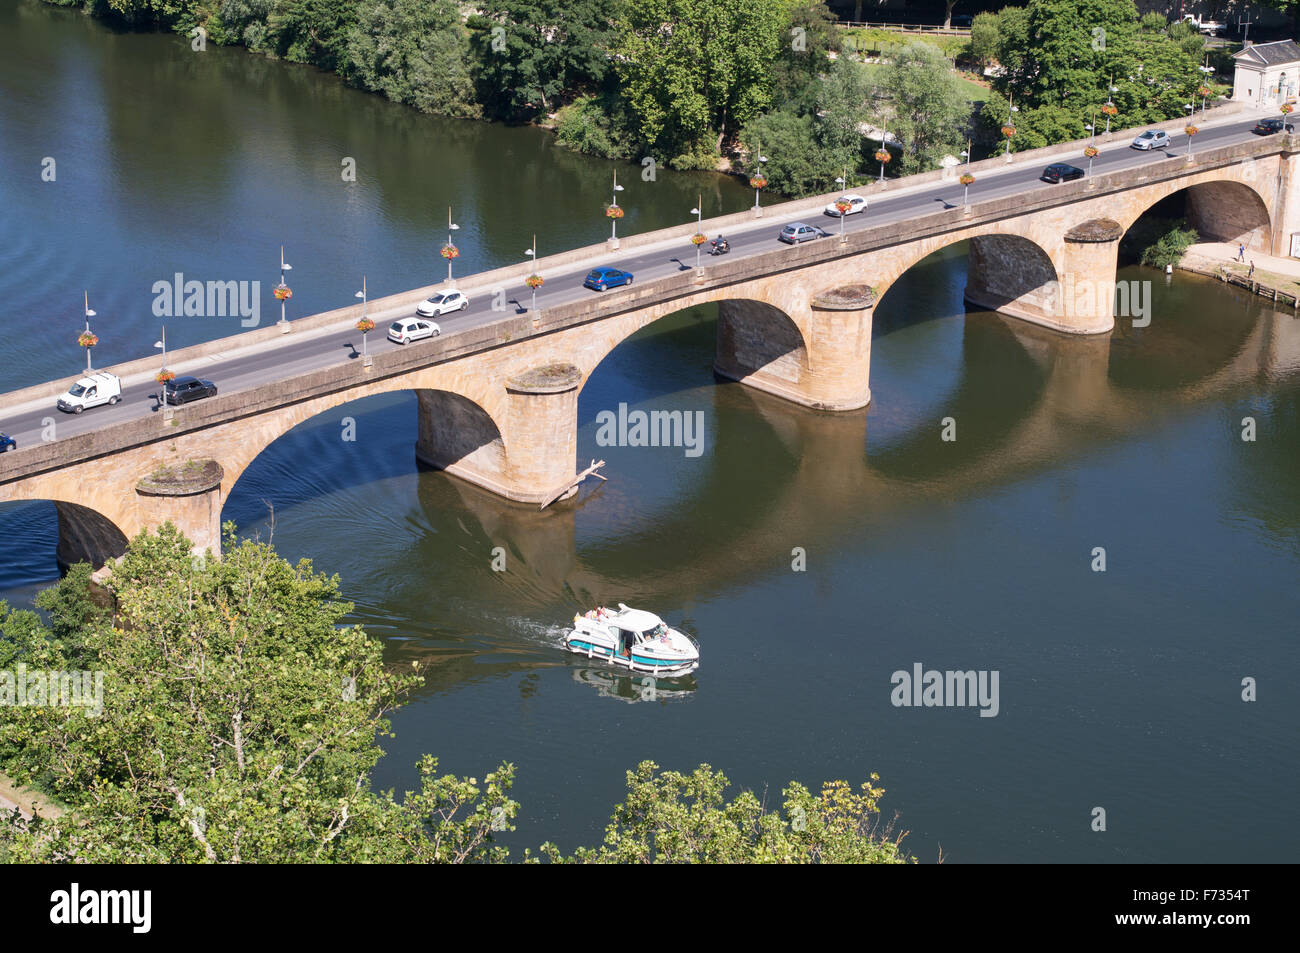 The Pont Louis-Philippe or road bridge over the river Lot in Cahors, Midi-Pyrénées, France, Europe - Stock Image